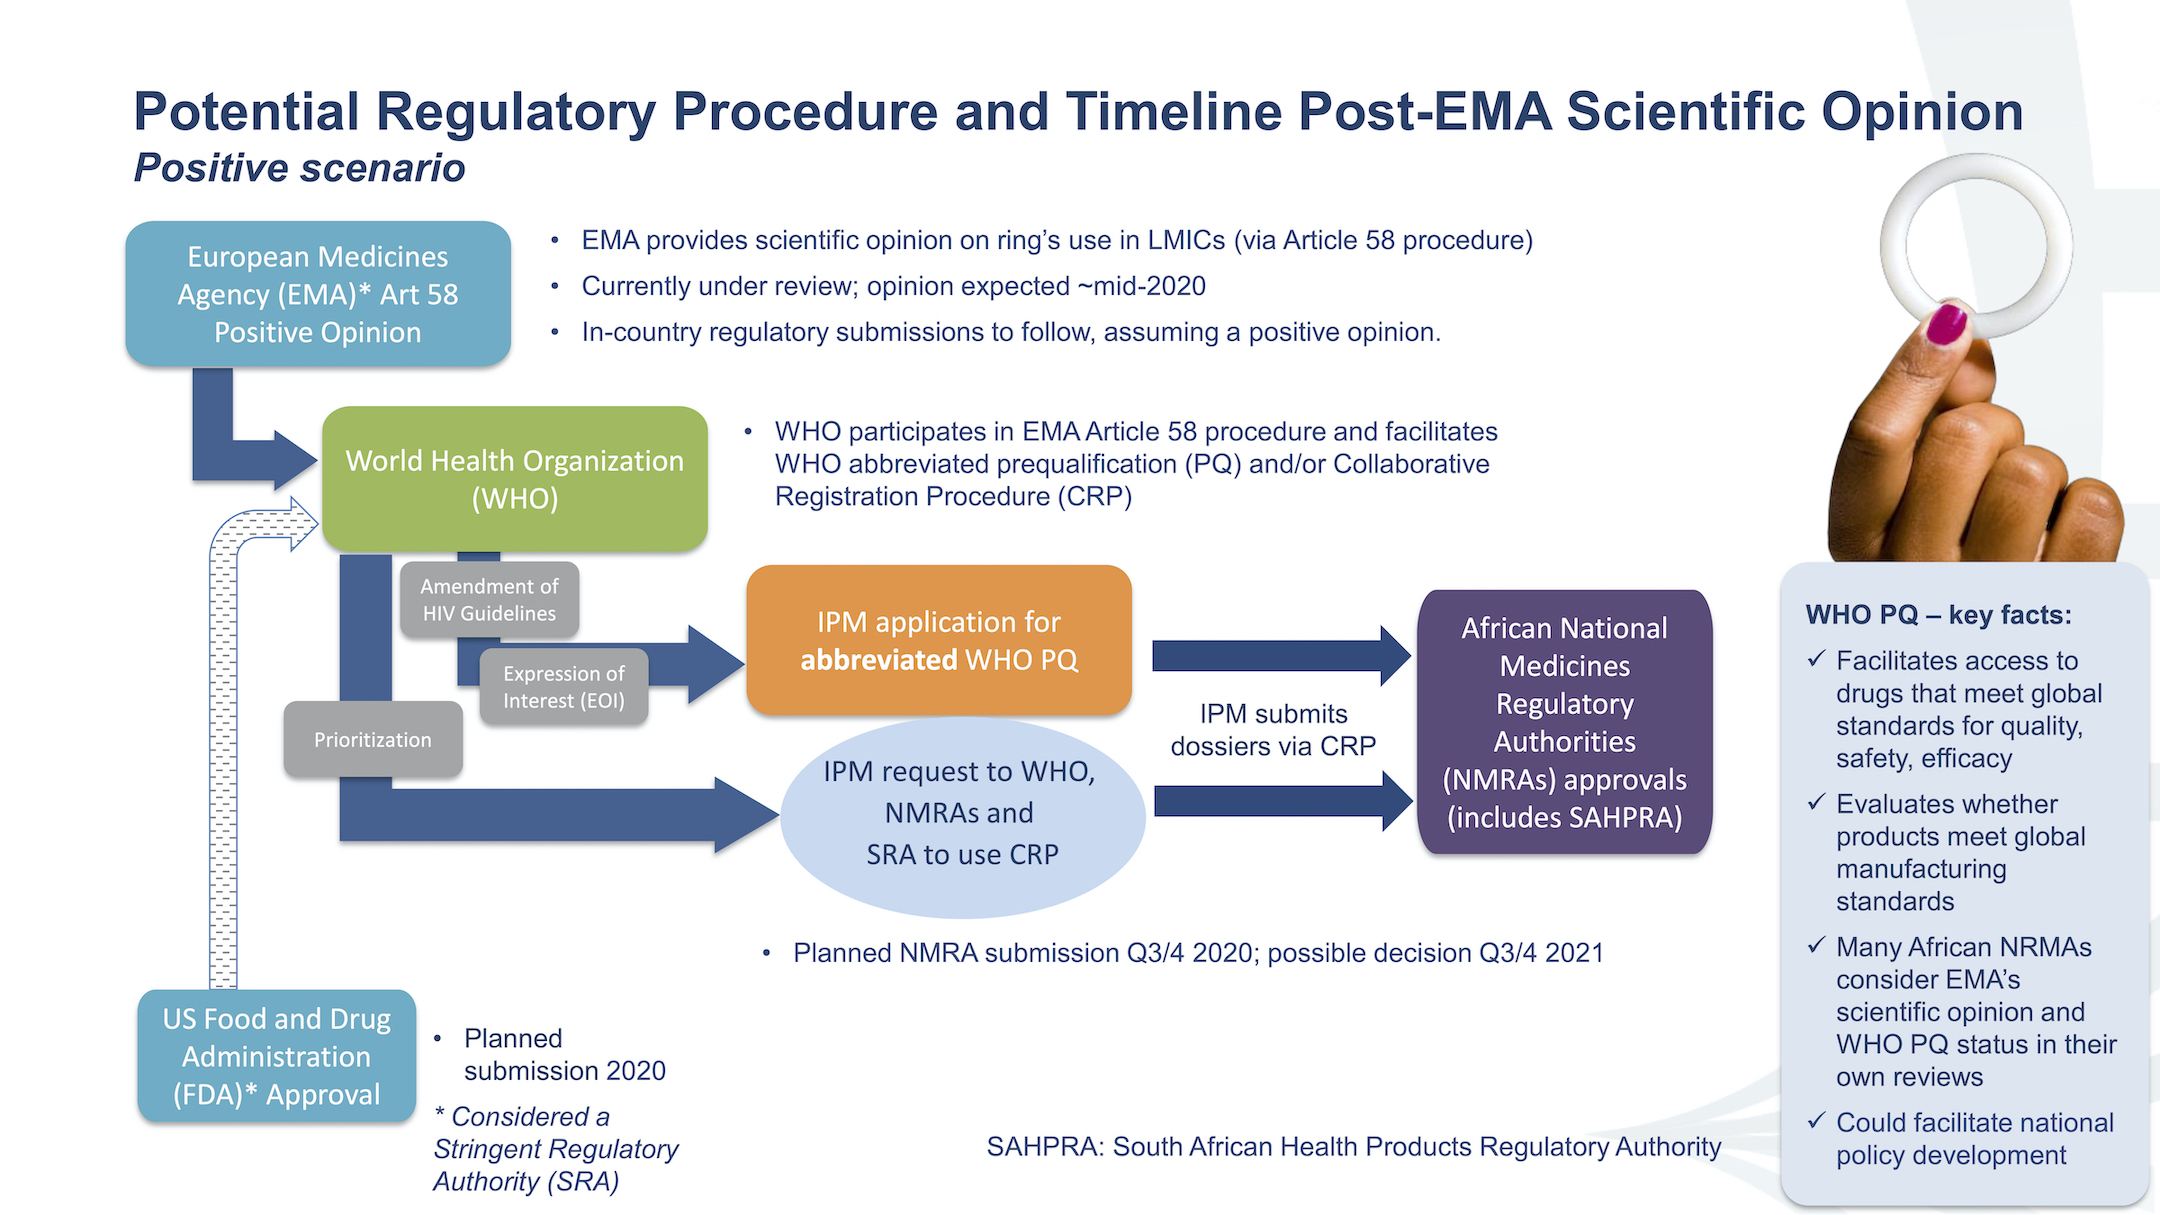 potential regulatory procedure and timeline post-EMA scientific opinion